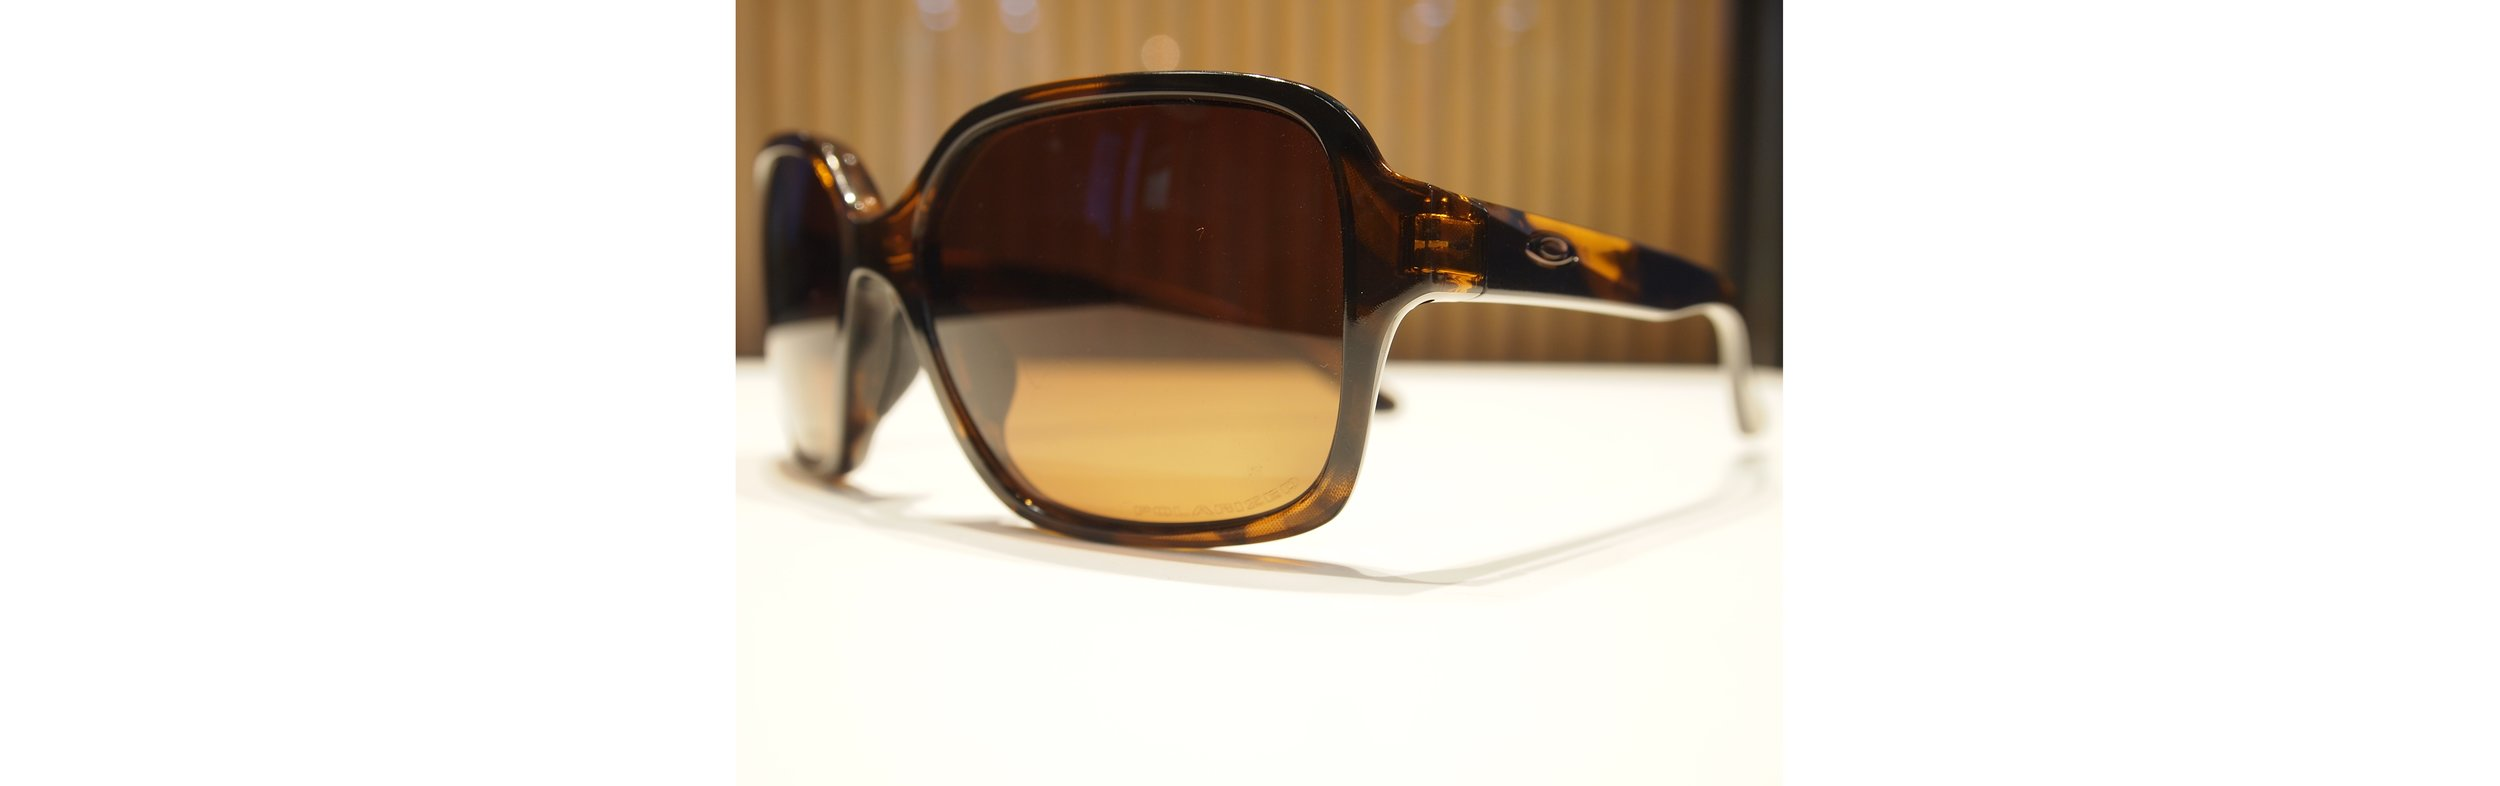 OakleyS 11B - Copy.JPG